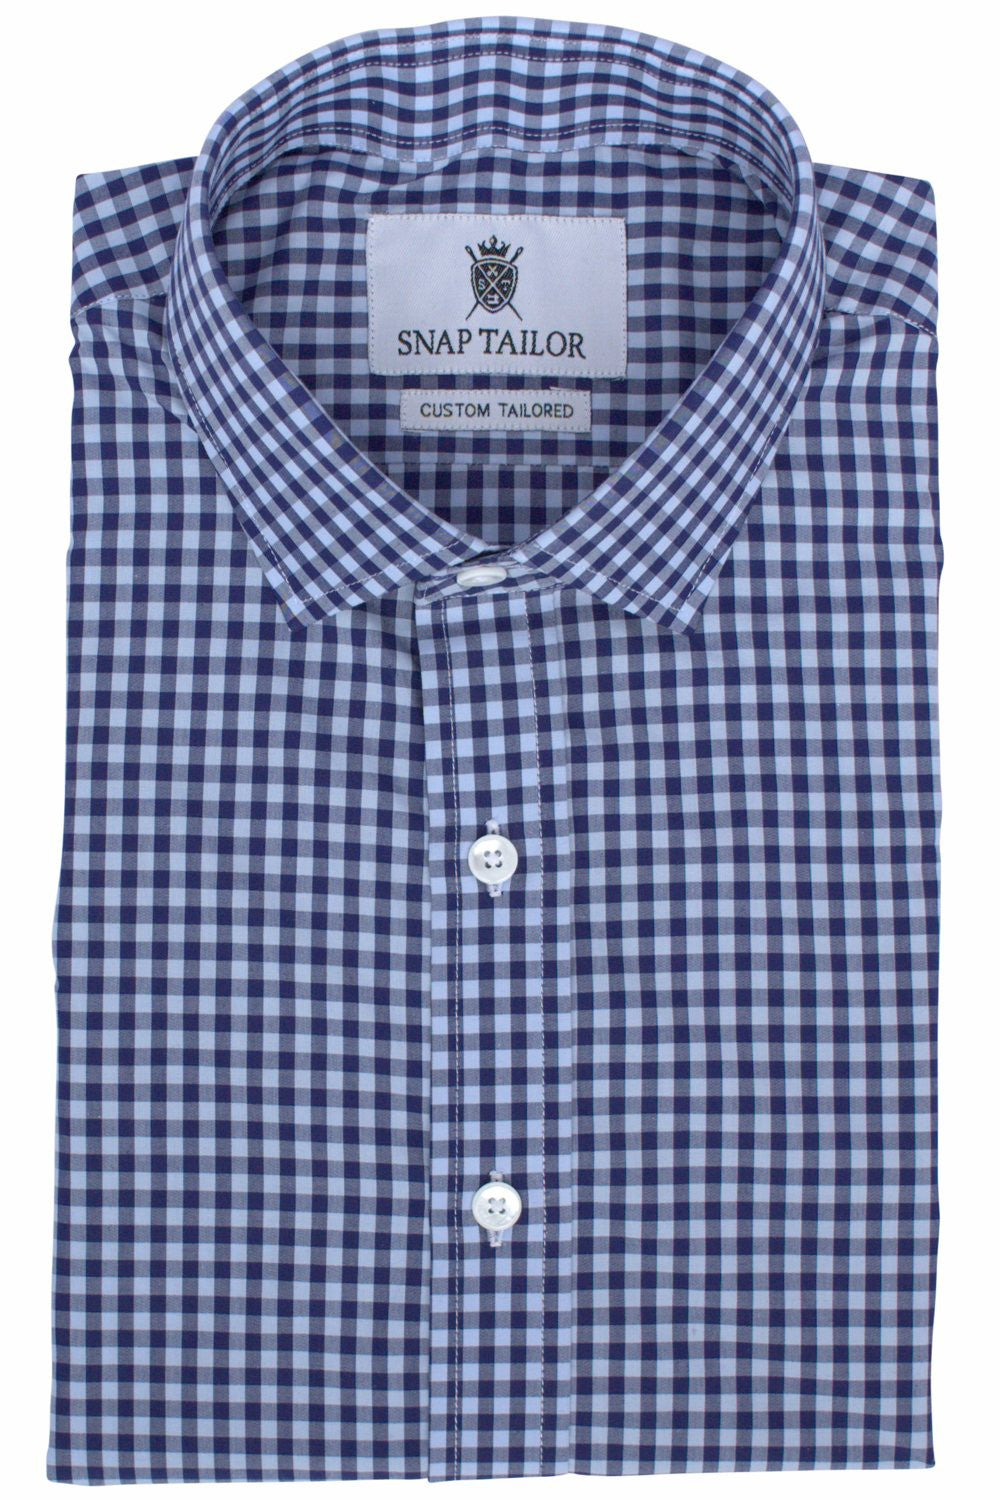 Photo of the Multicolor Gingham Casual Shirt in Dark Blue / Light Blue